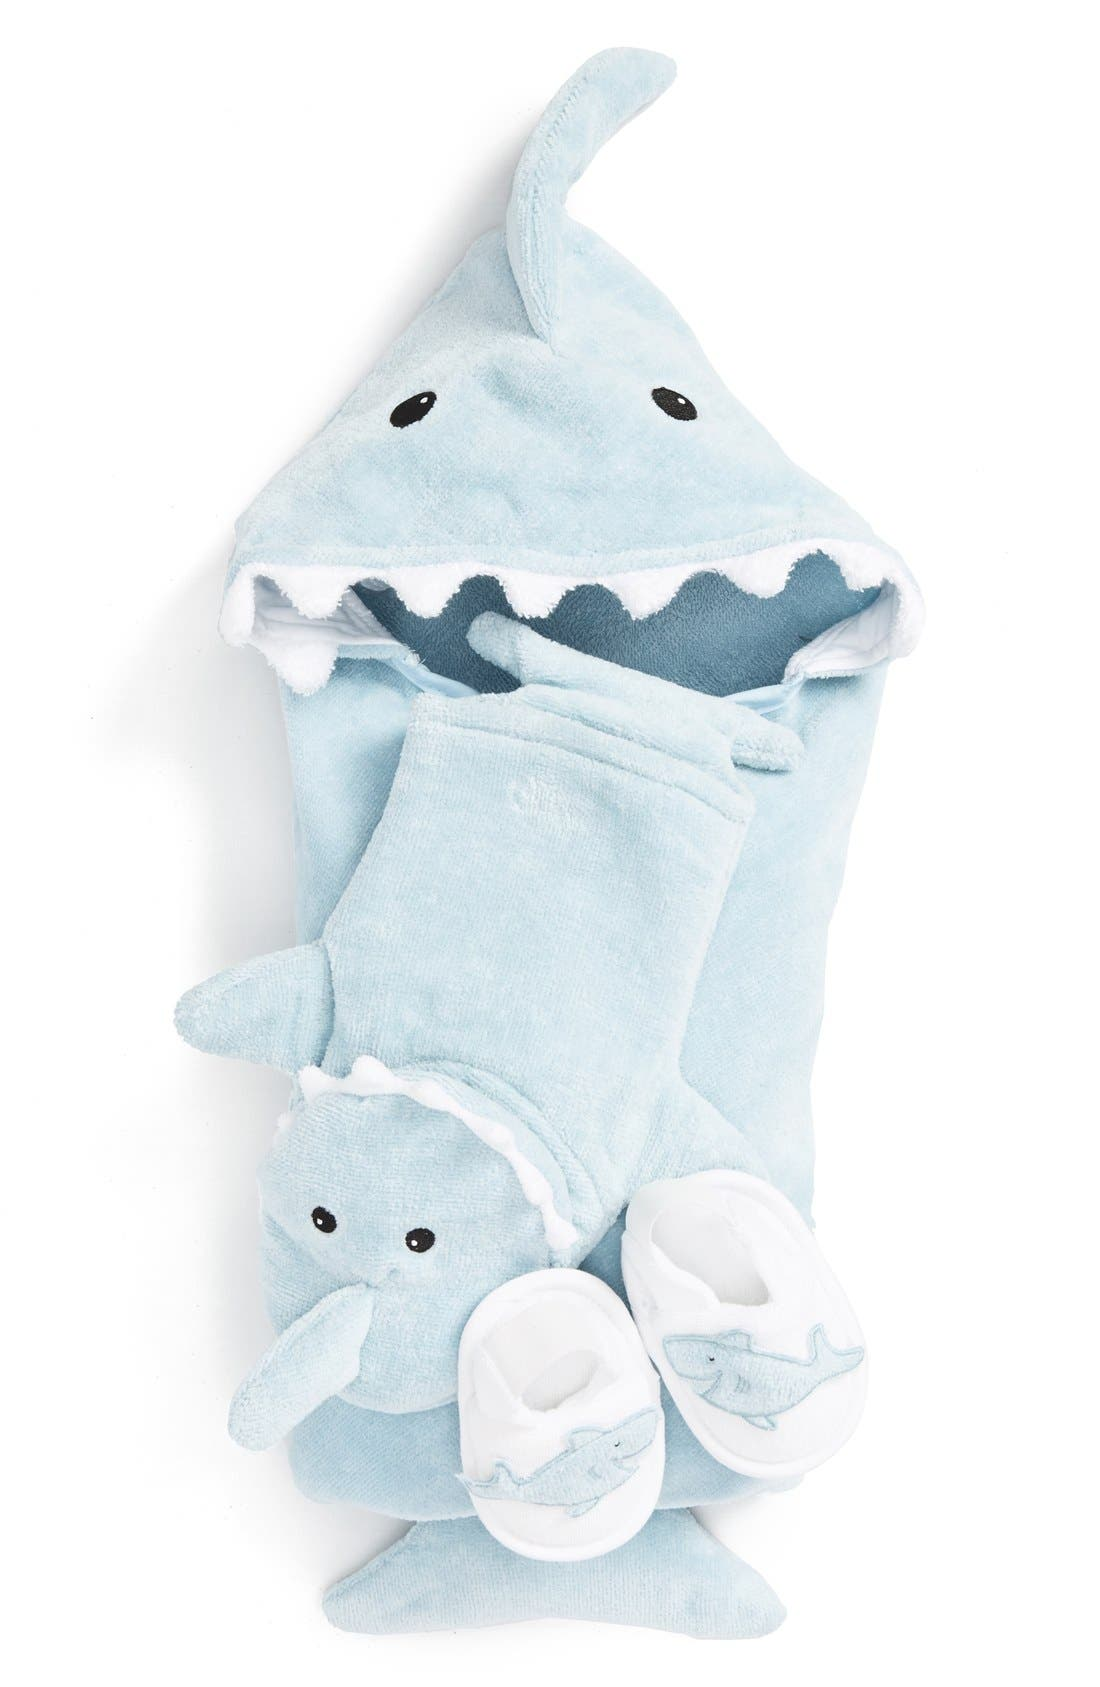 'Let the Fin Begin' Hooded Terry Robe, Bath Mitt & Slippers Set,                         Main,                         color, LIGHT BLUE